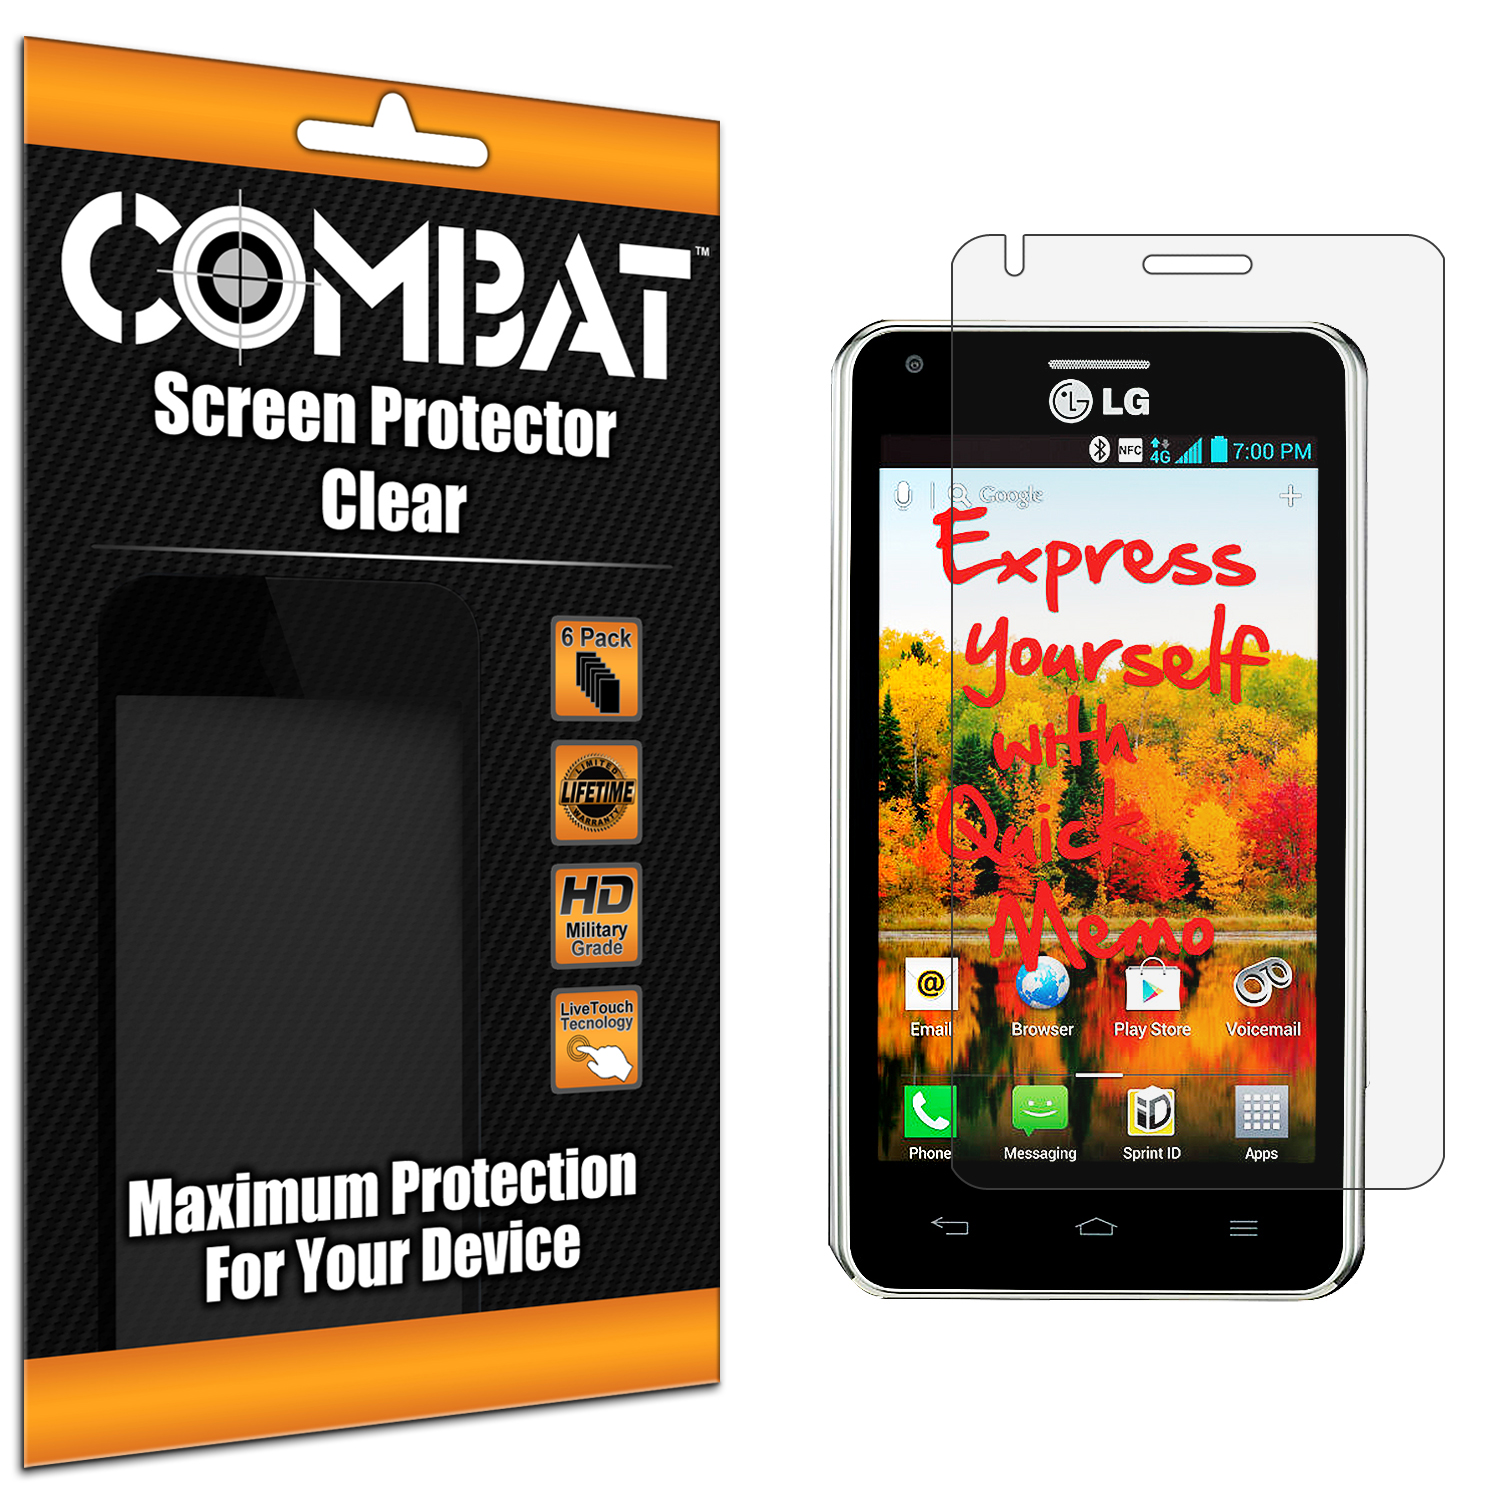 LG Mach LS860 Combat 6 Pack HD Clear Screen Protector